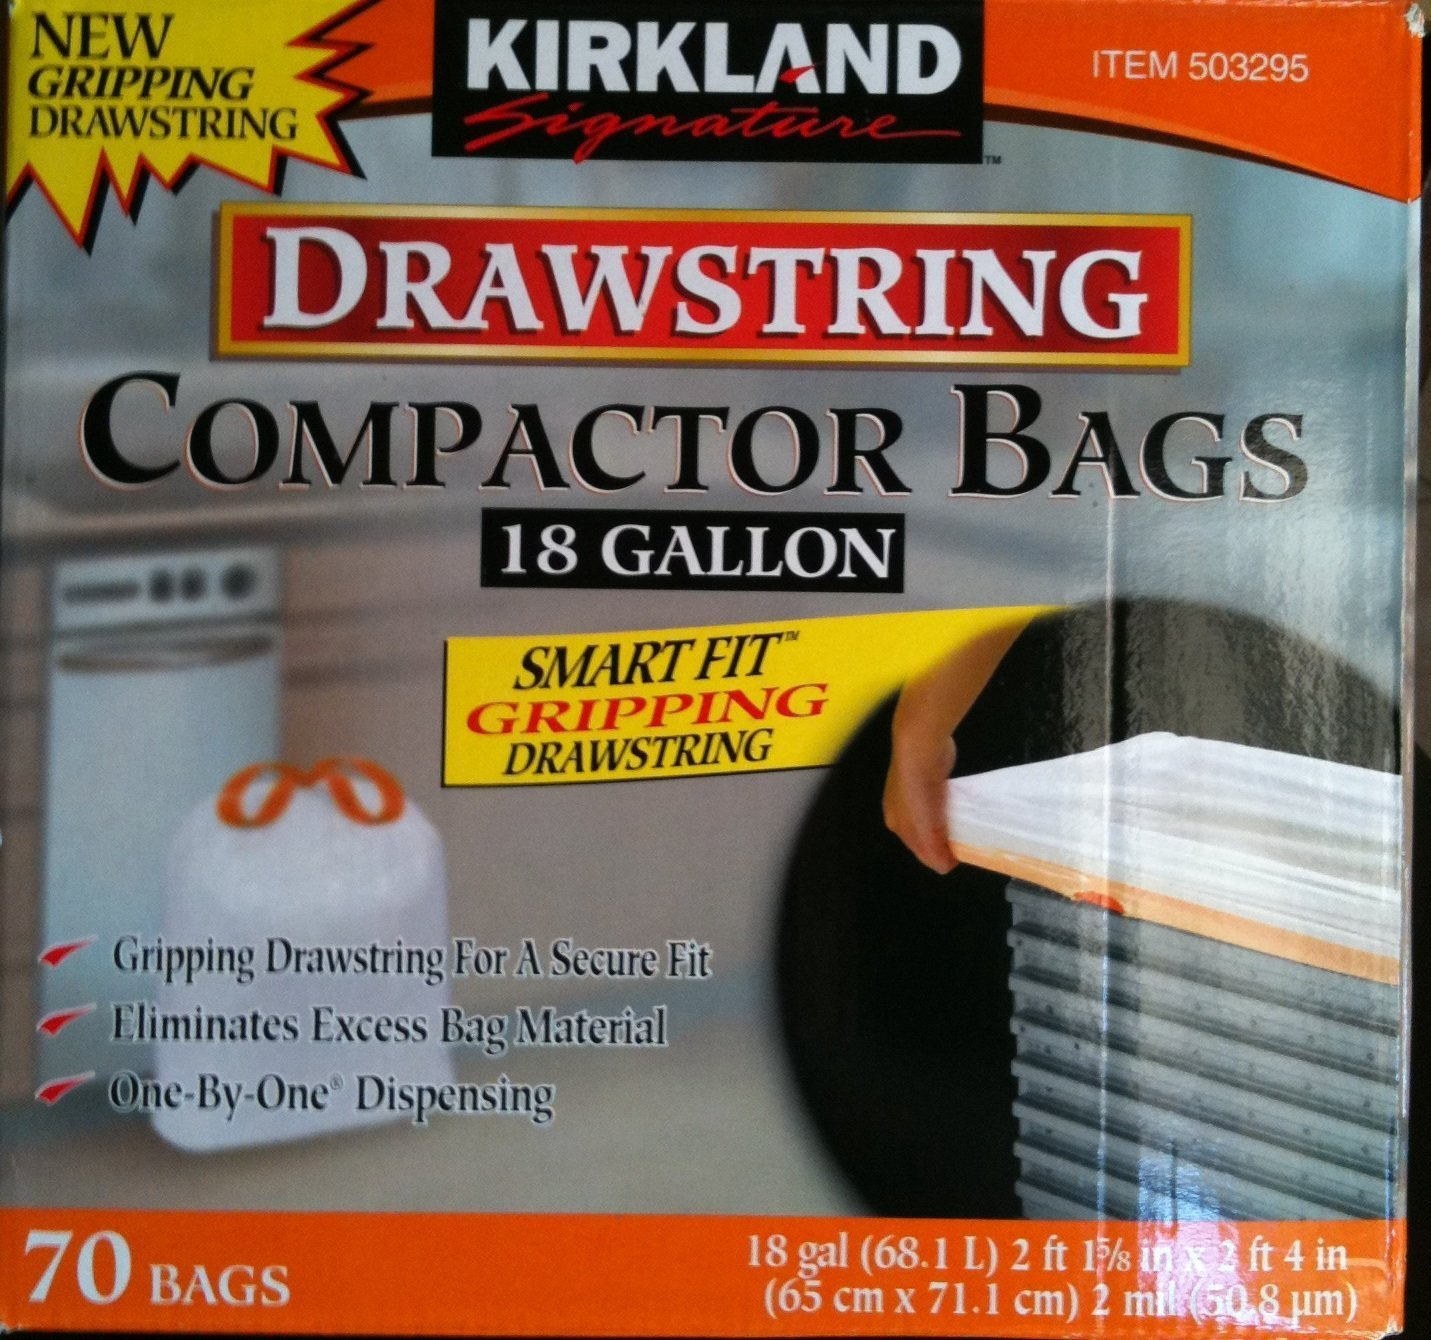 Kirkland Compactor Bags, 18 Gallon, Smart Fit Gripping Drawstring, 140 Count Size